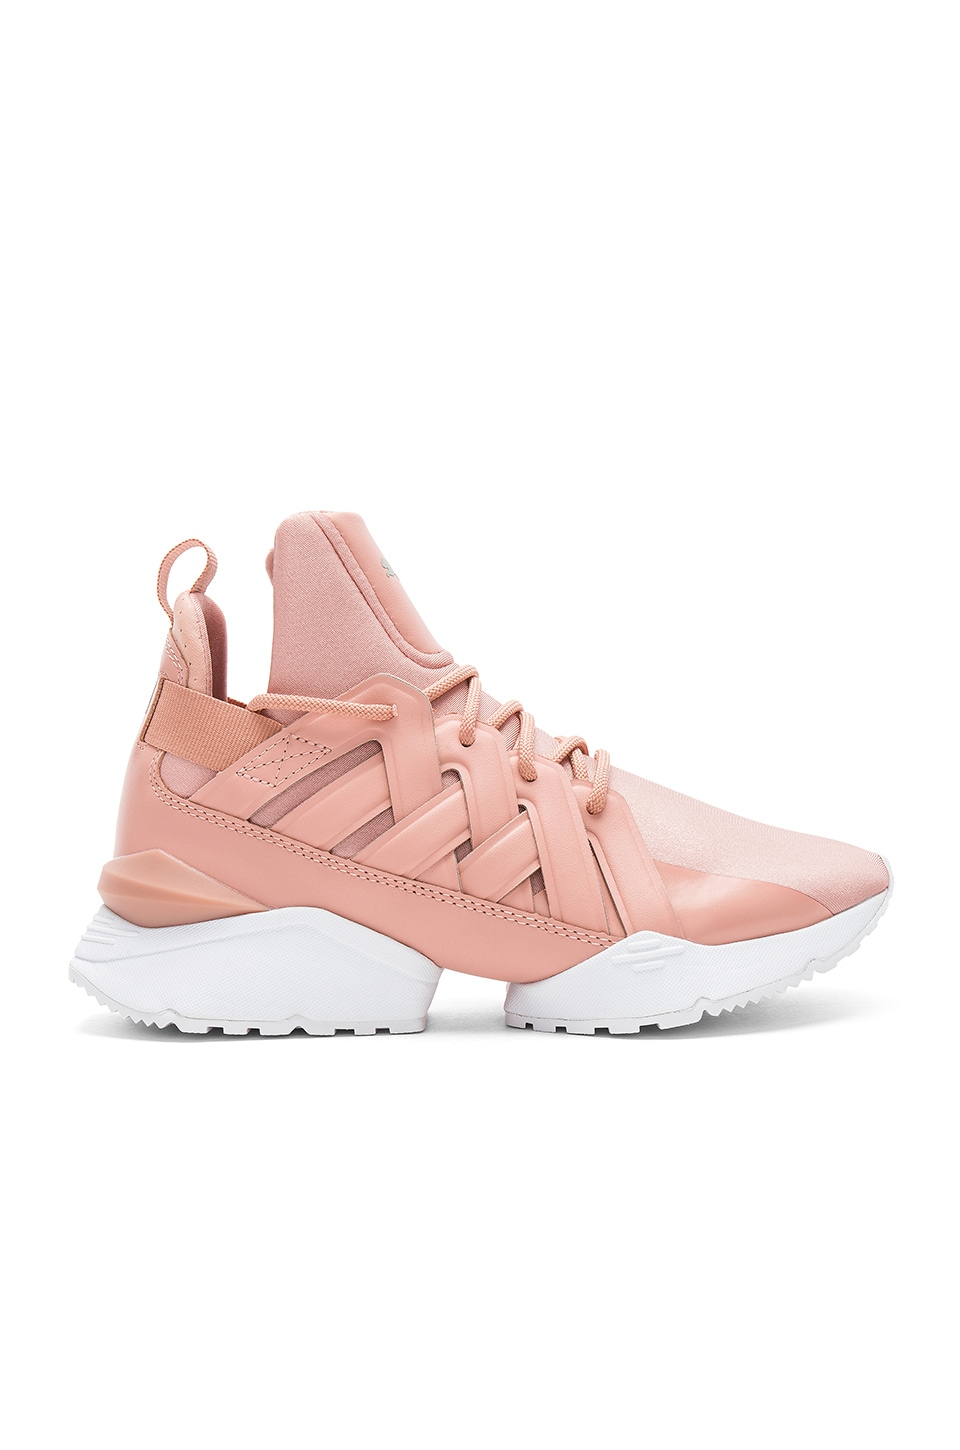 Muse Echo Satin EP Sneaker in Pink. - size 6.5 (also in 10,5.5,6,7,7.5,8,8.5,9) Puma